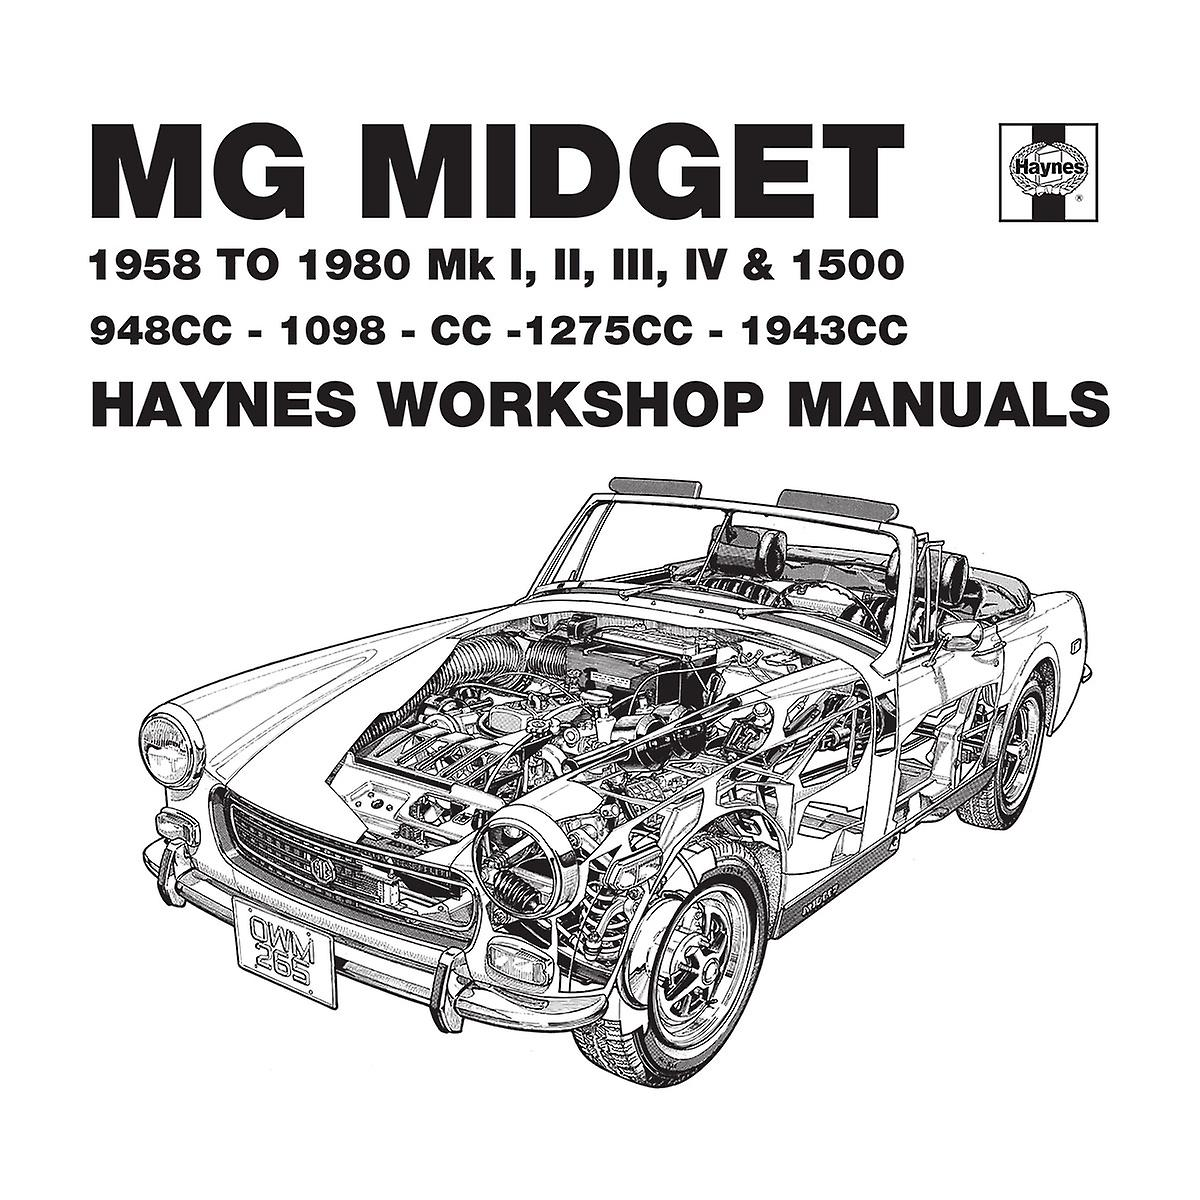 Haynes Owners Workshop Manual 0265 MG Midget 948 to 1275cc